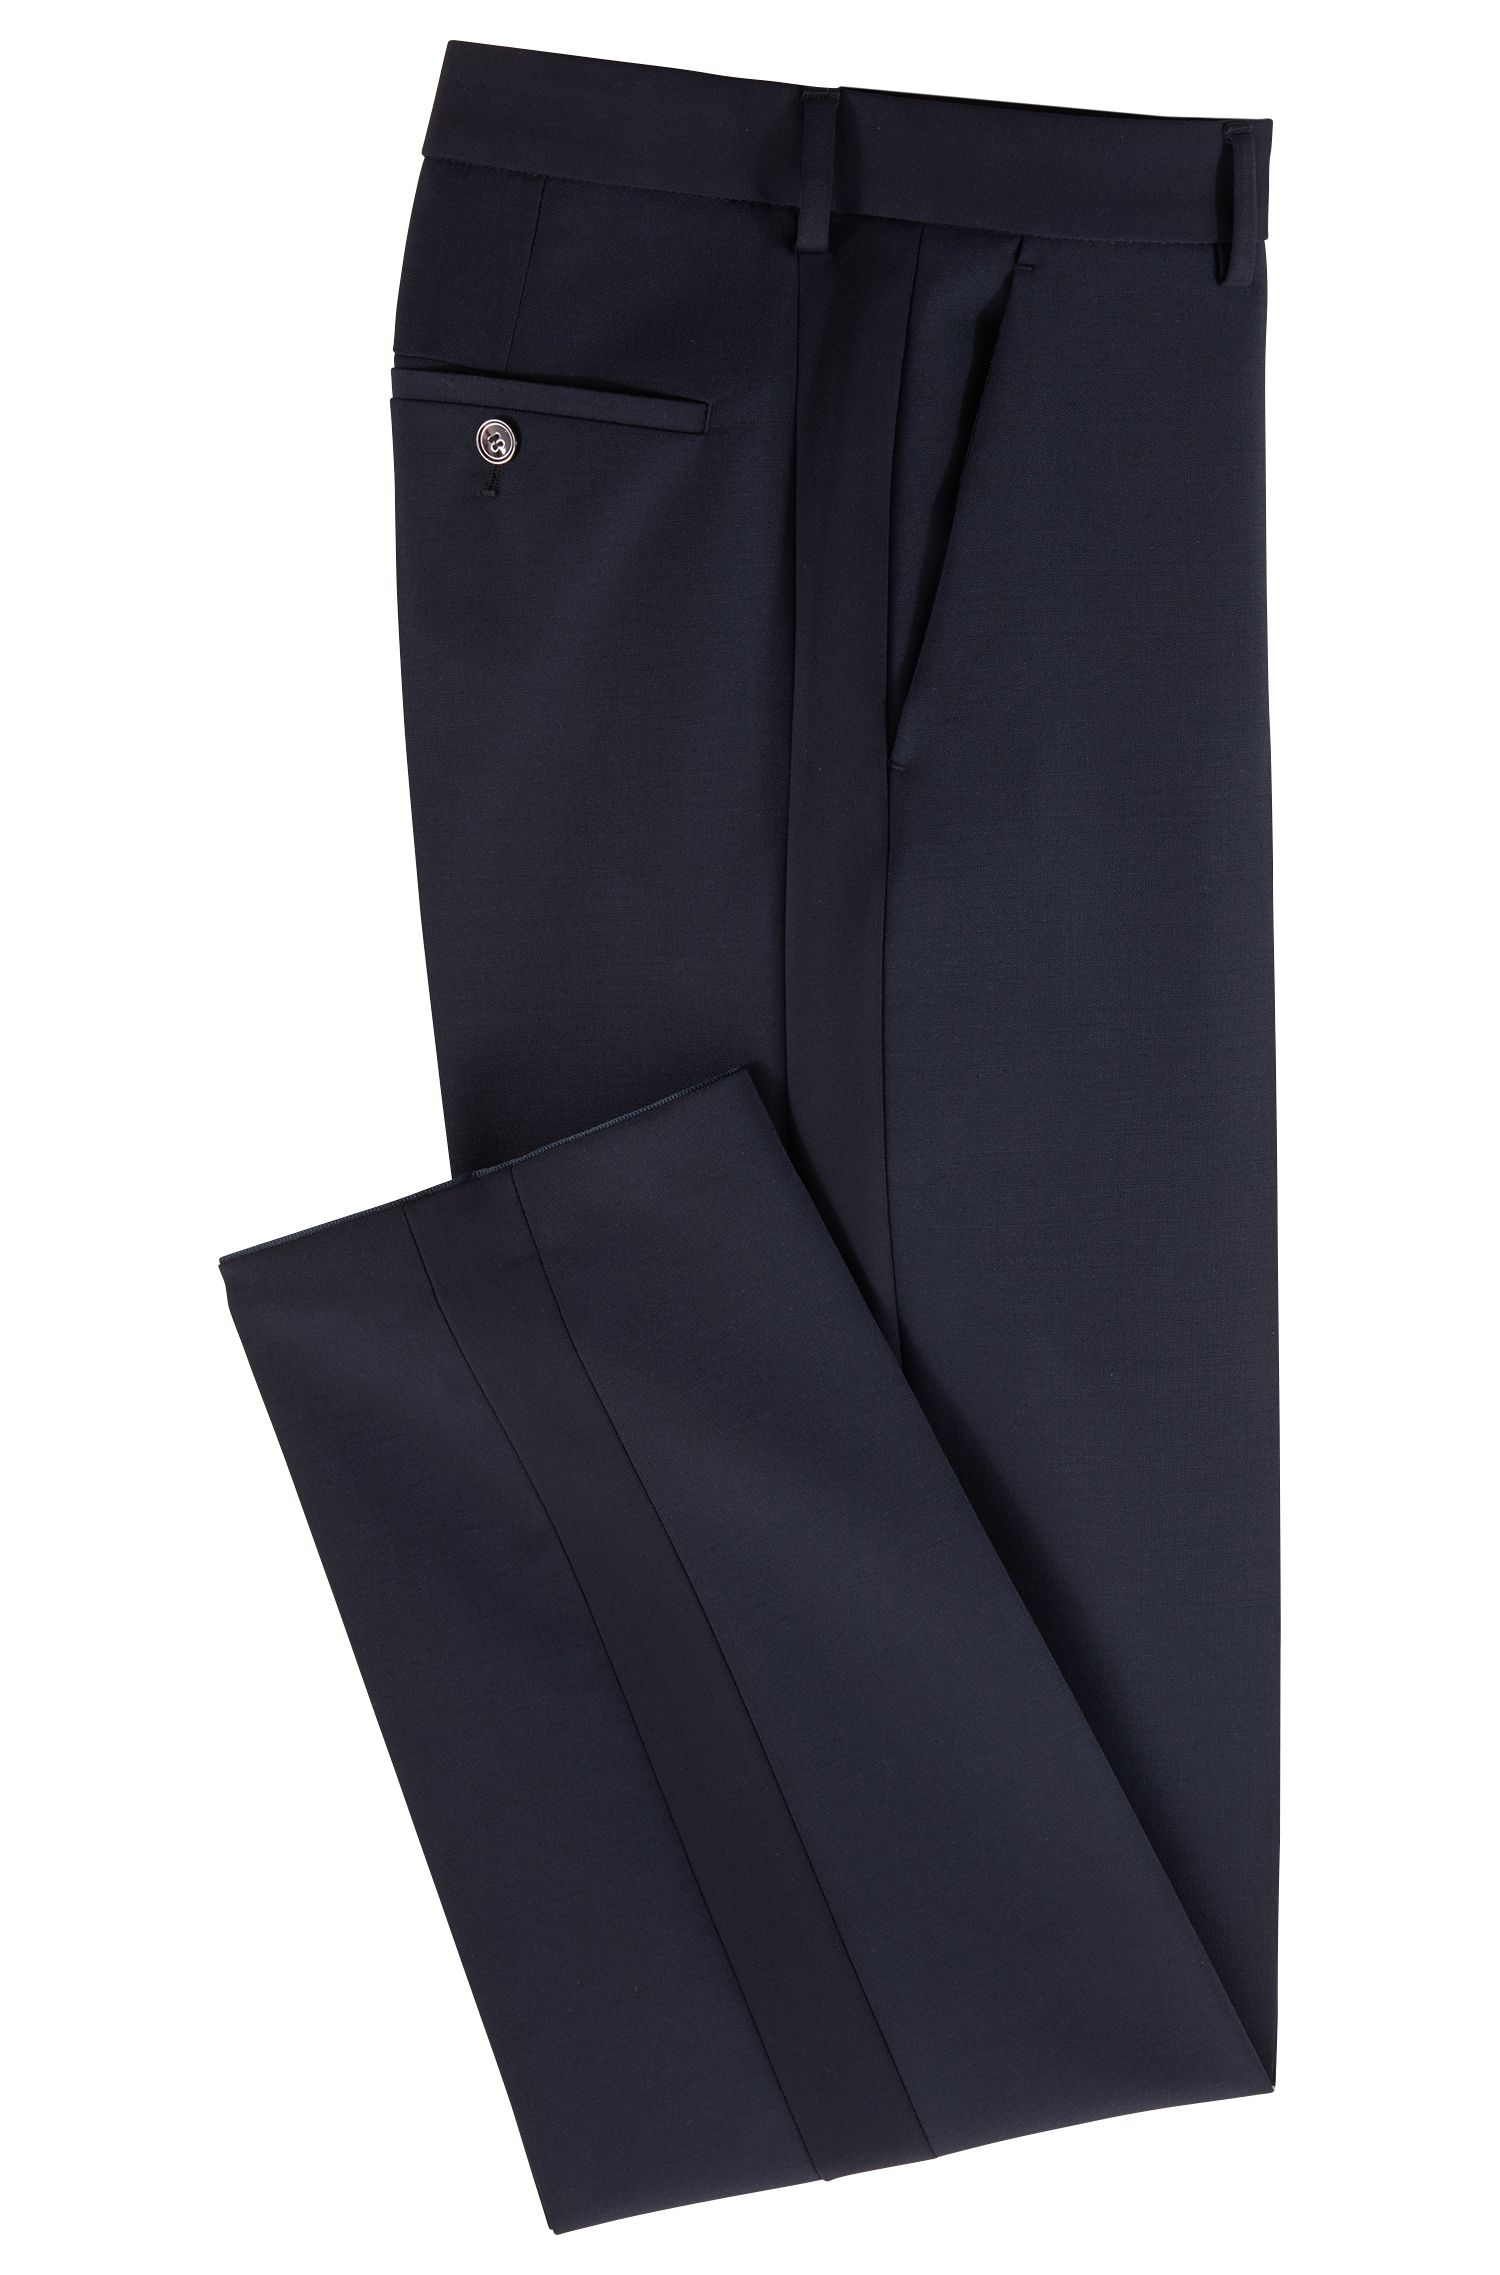 Pantaloni slim fit in lana vergine con mohair, Blu scuro